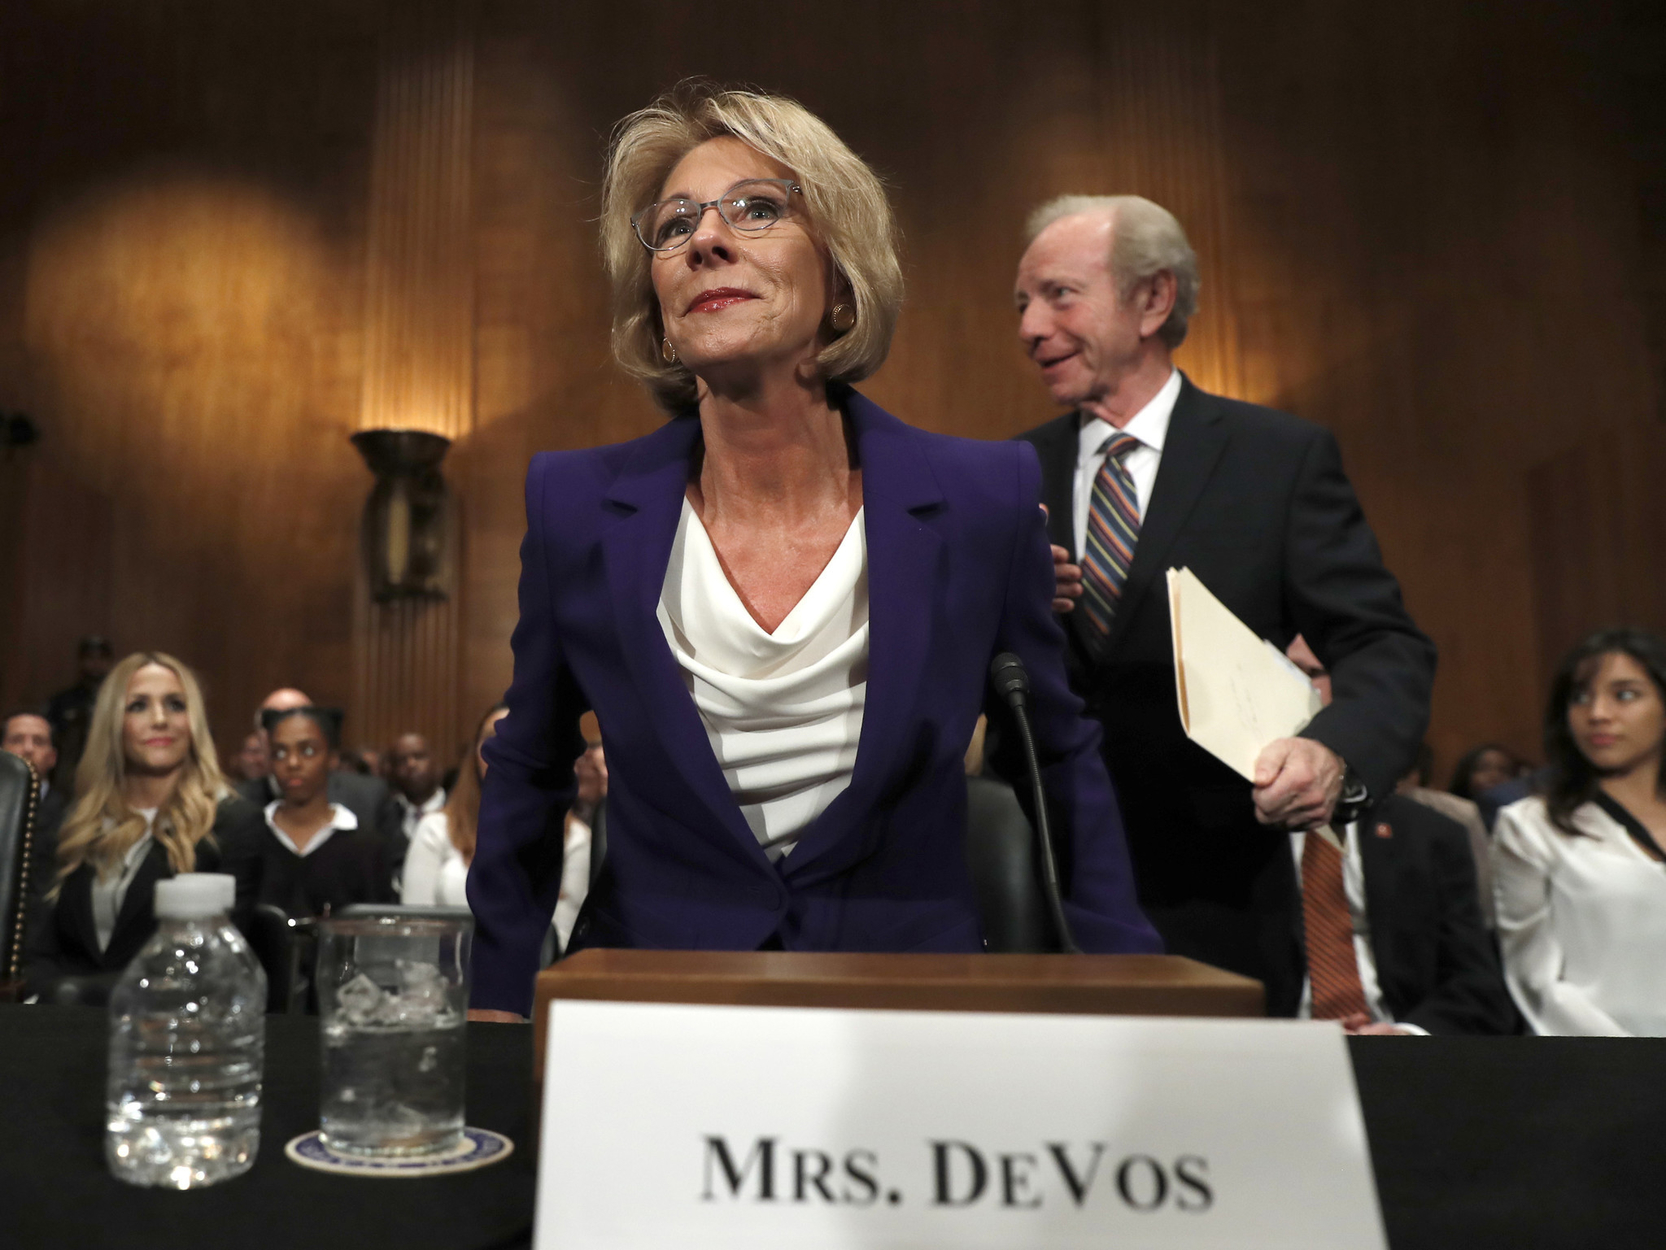 DeVos finalizes ethics disclosure ahead of confirmation vote